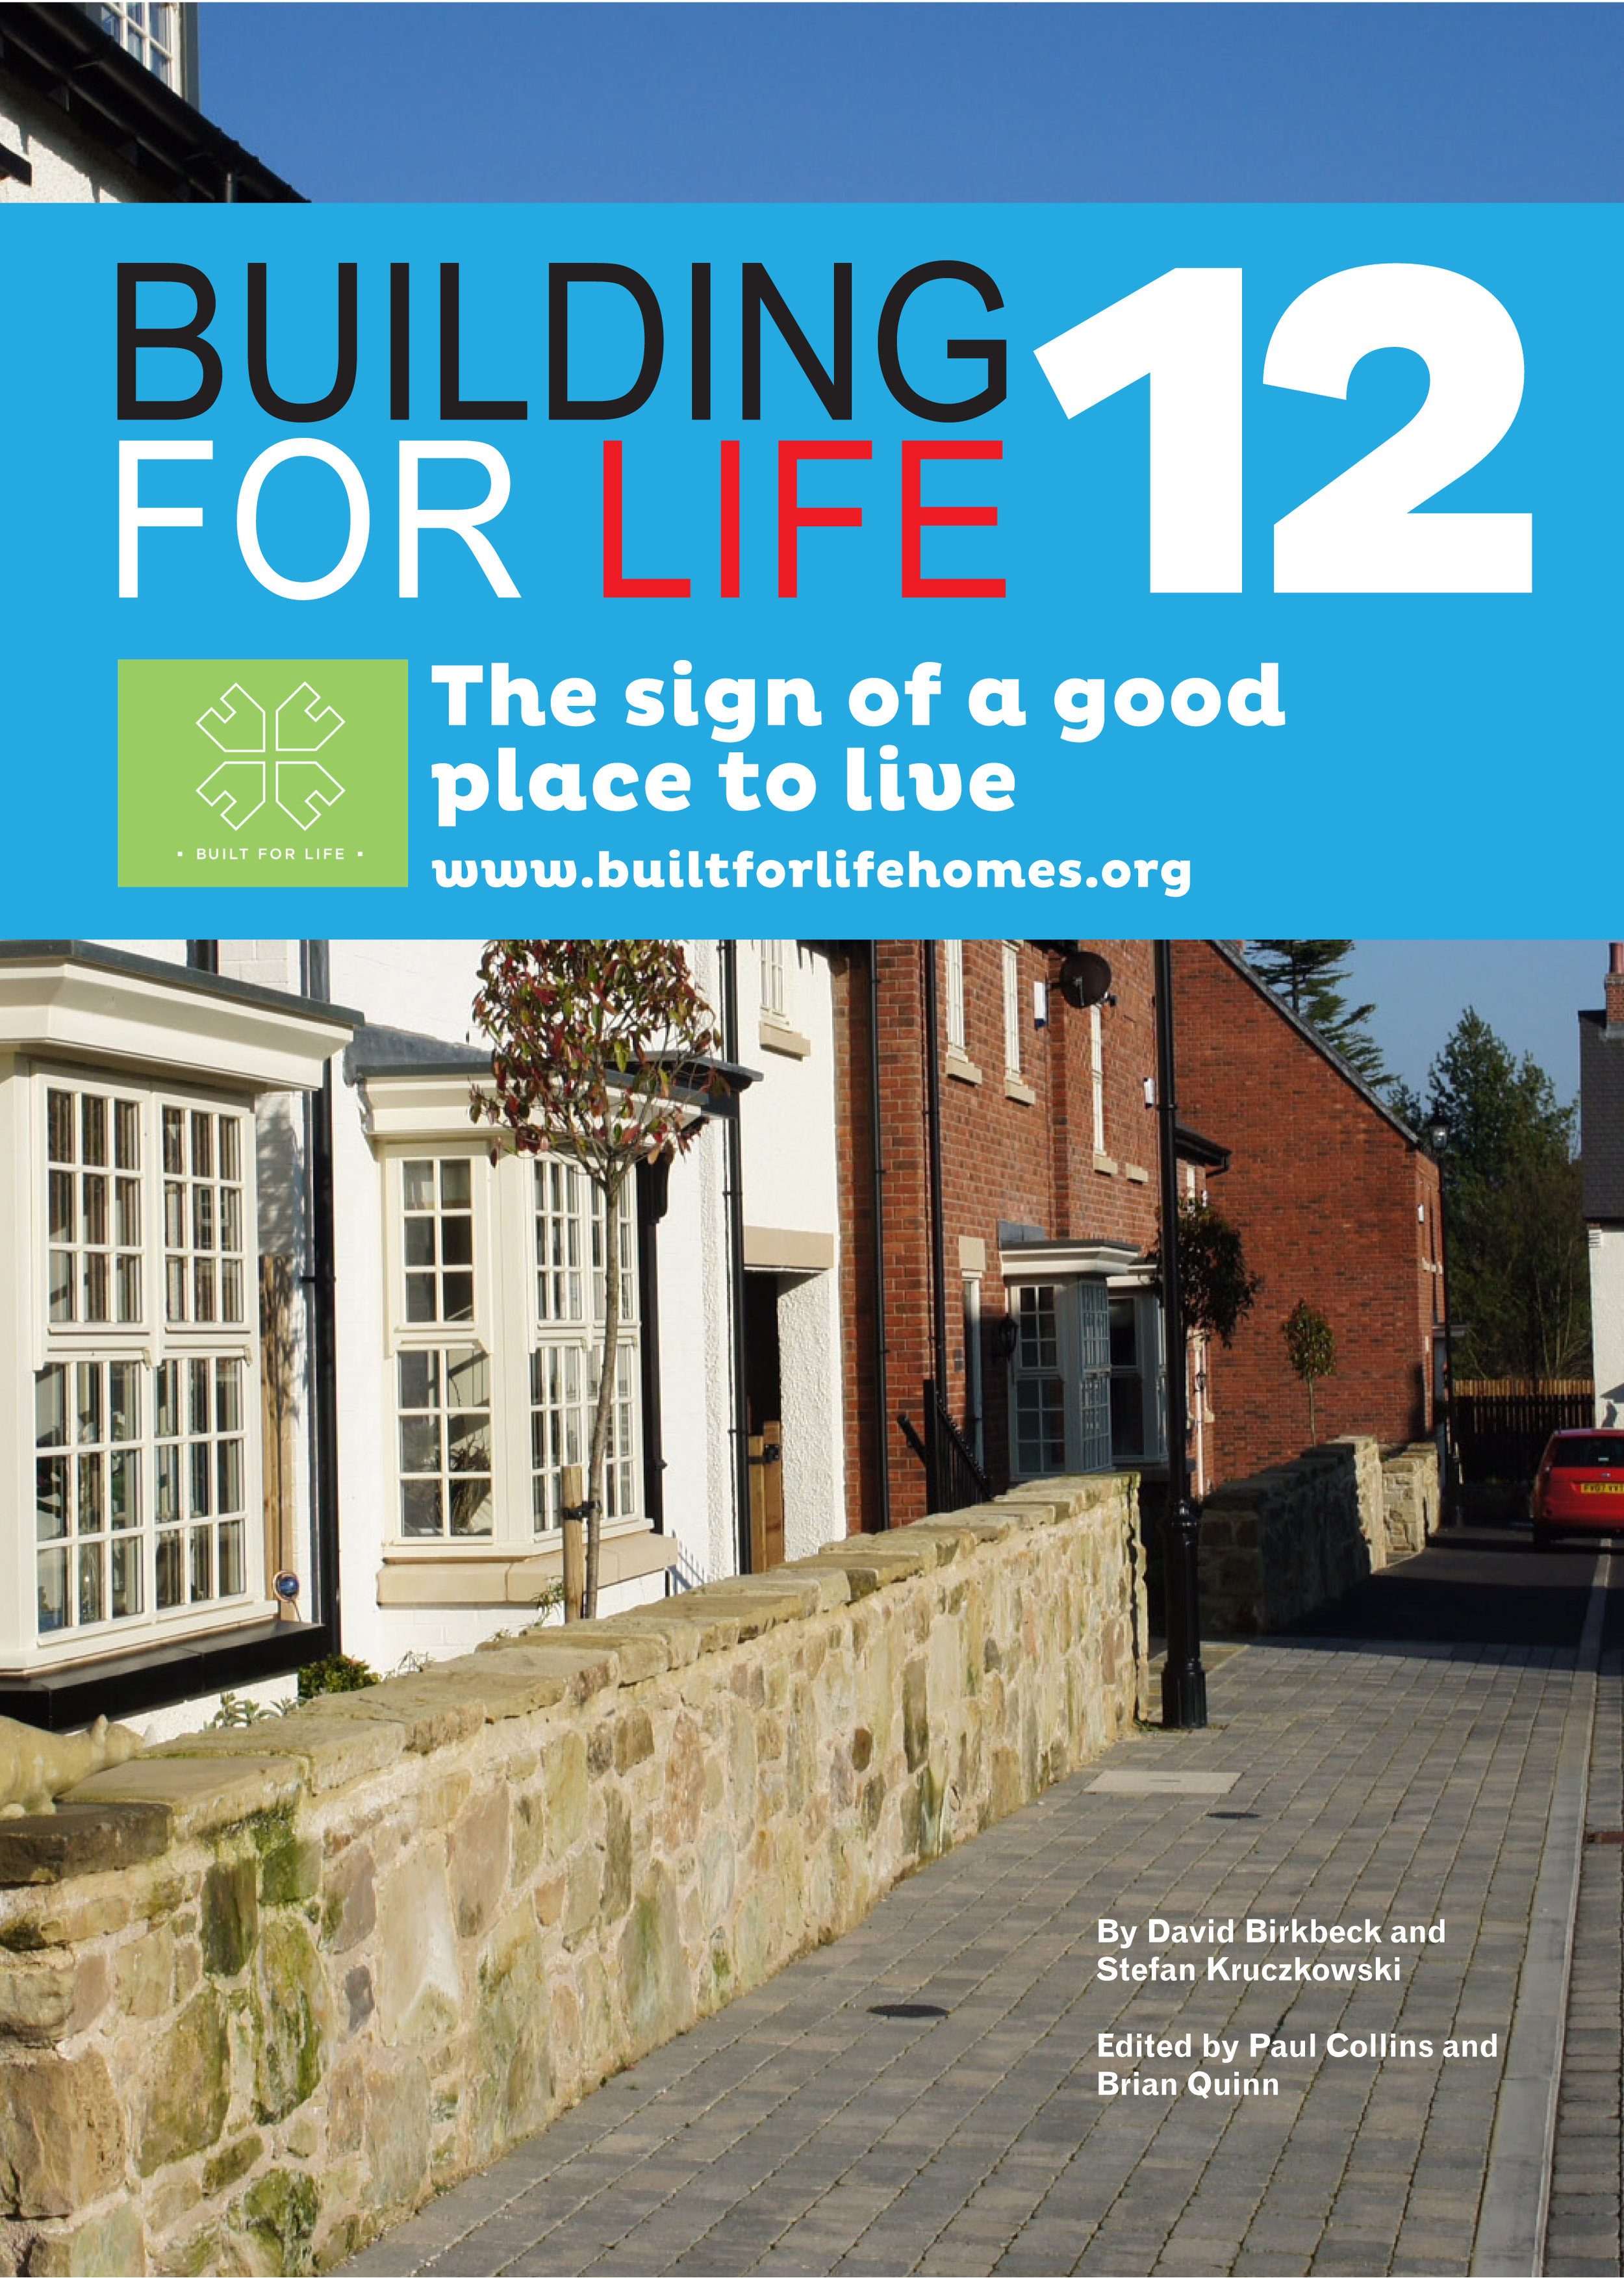 The industry standard - Building for Life 12 is the industry standard, endorsed by Government, for well-designed homes and neighbourhoods. Building for Life stimulates a conversation between local communities, local authorities and developers about creating great places to live. Building for Life 12 and Design Review are complementary processes, particularly on large scale housing schemes.Building for Life 12 has been developed to reflect a powerful vision of what new housing developments should be: attractive, functional and sustainable places. It is based on the National Planning Policy Framework and the Government's commitment to build more homes, better homes and involve local communities in planning. Opun offer training as well as Building for Life 12 reviews and assessment of schemes at both the pre and post planning stages